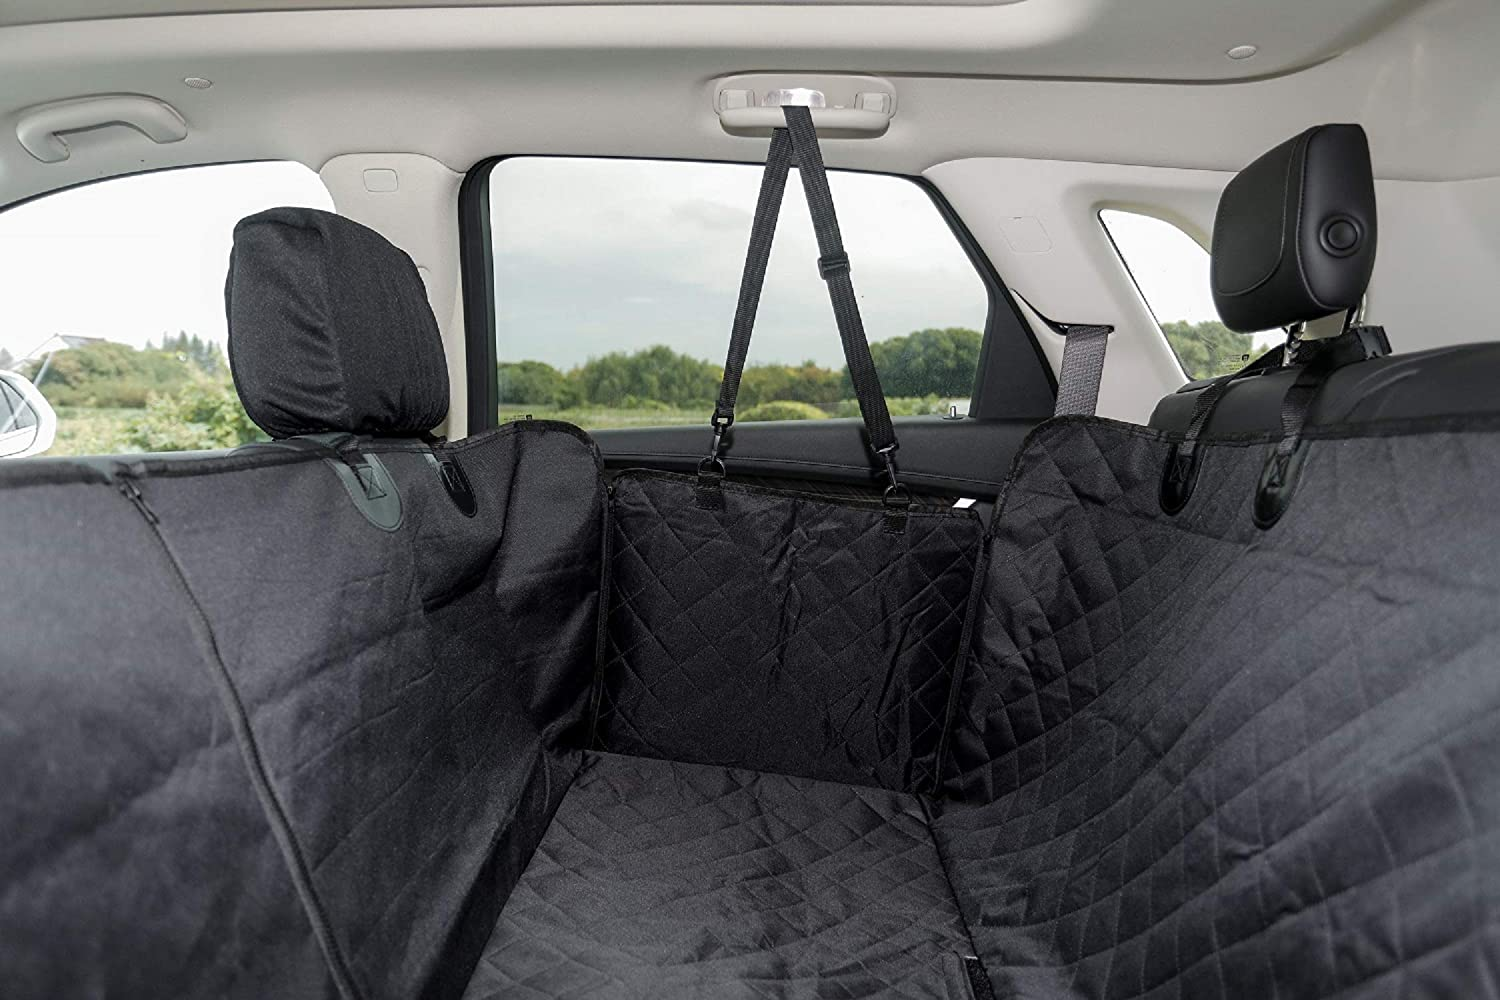 BH Dog Seat Cover for Back Seat Waterproof Oxford Cloth Hammock 600D Heavy Duty Scratch Proof Nonslip Durable Soft for Cars Trucks and SUVs